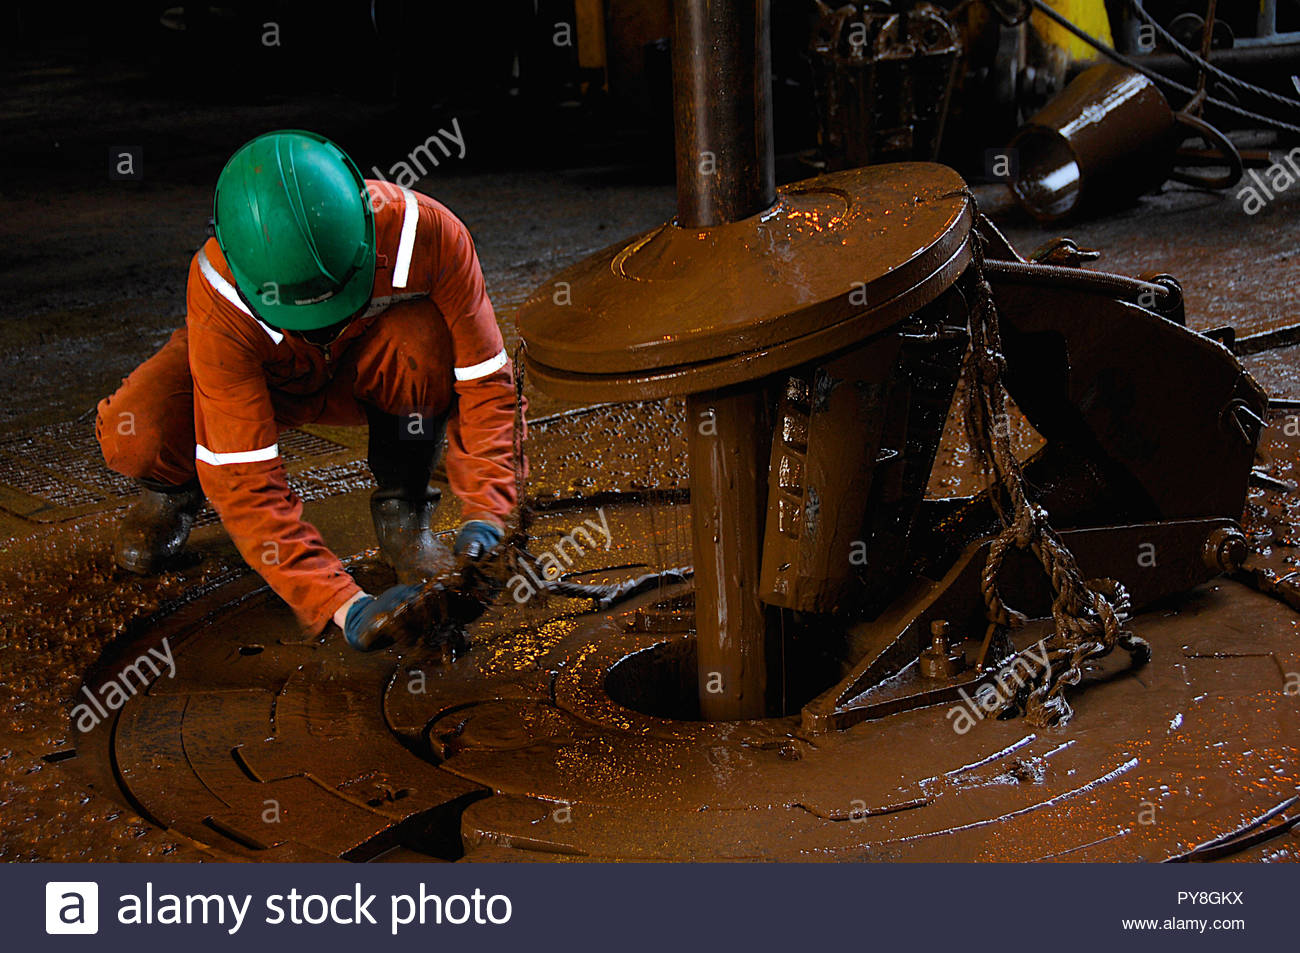 Worker crouched by dirty pipe - Stock Image